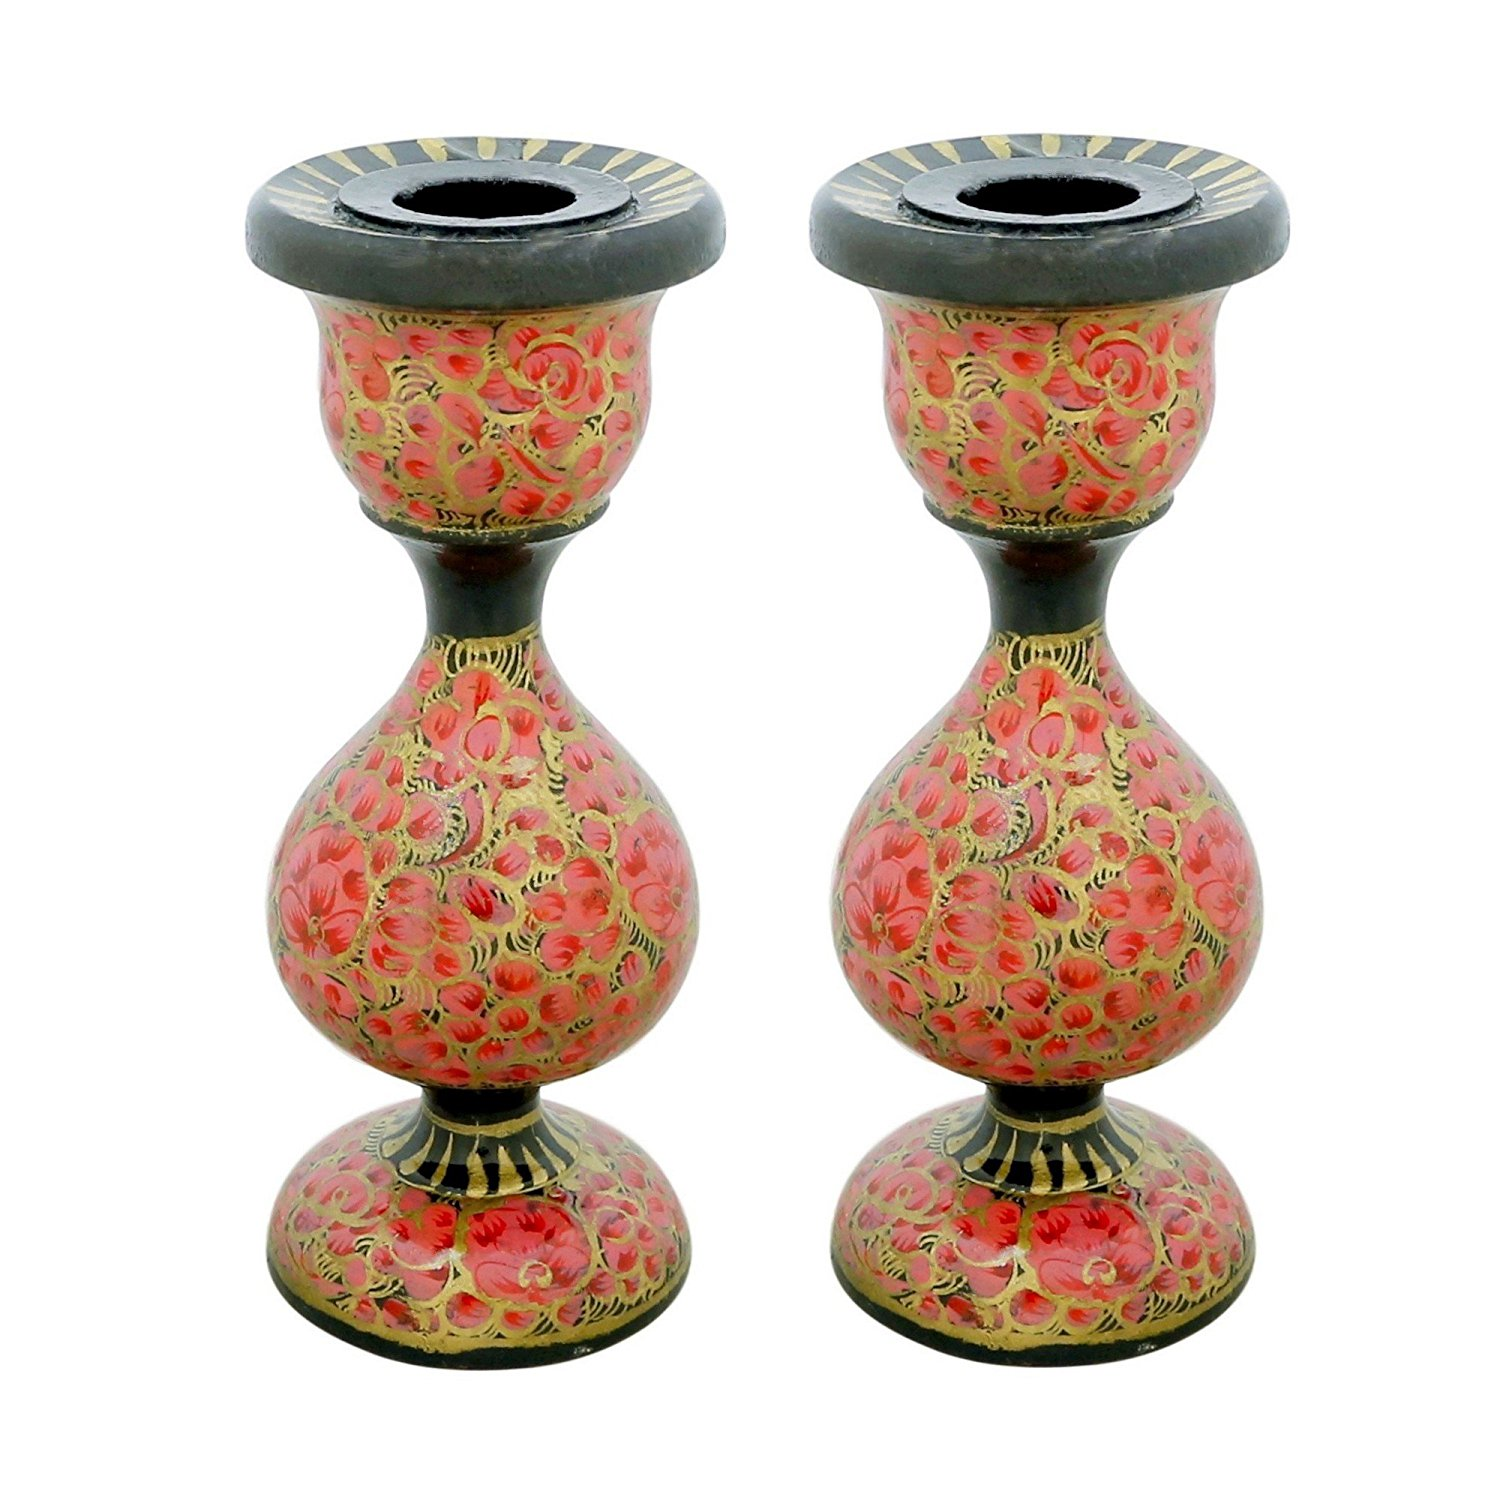 lacquer il russian fullxfull lily by globalcuriosity hand flower listing paper beads jewelry painted sold mache